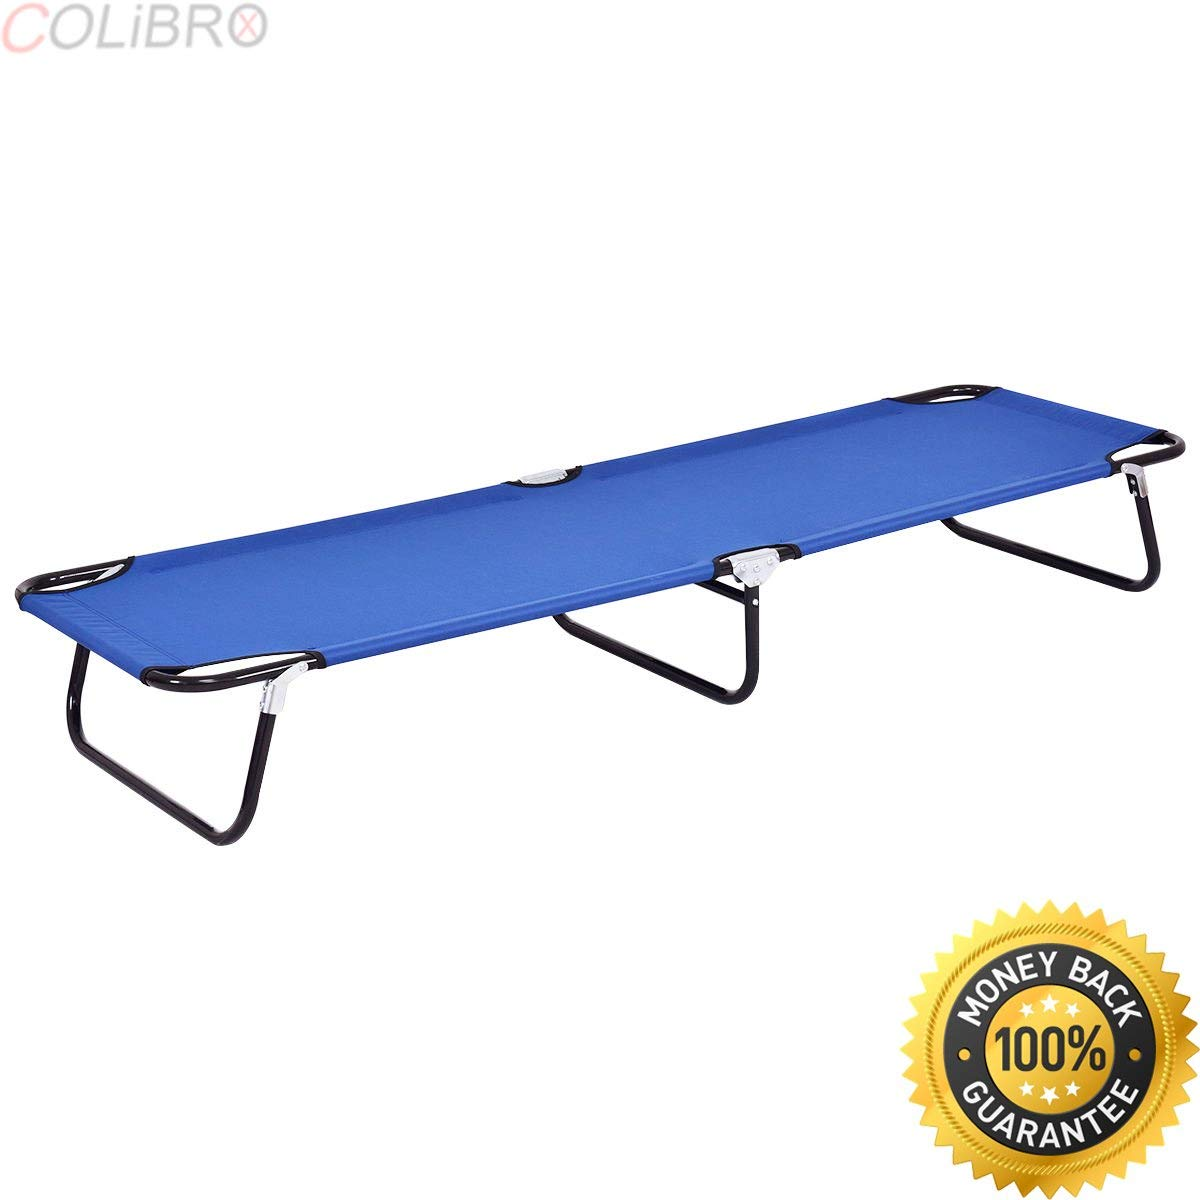 COLIBROX--Blue Folding Camping Bed Outdoor Portable Military Cot Sleeping Hiking Travel. best portable folding camping bed on amazon. folding camping bed with mattress. portable folding cot for sale.